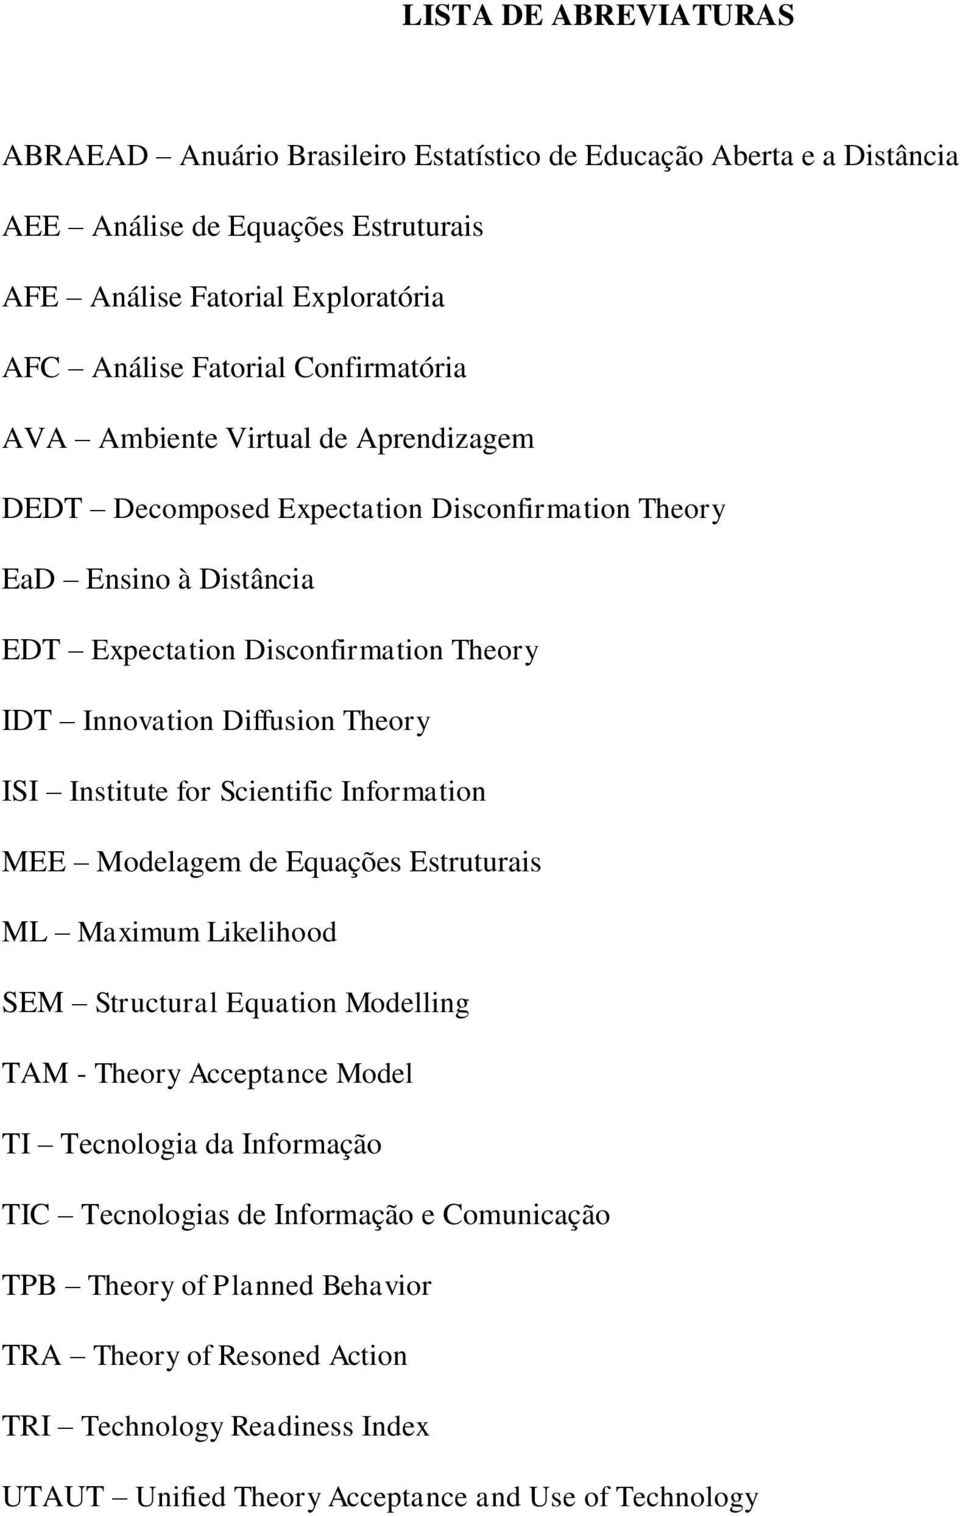 Theory ISI Institute for Scientific Information MEE Modelagem de Equações Estruturais ML Maximum Likelihood SEM Structural Equation Modelling TAM - Theory Acceptance Model TI Tecnologia da